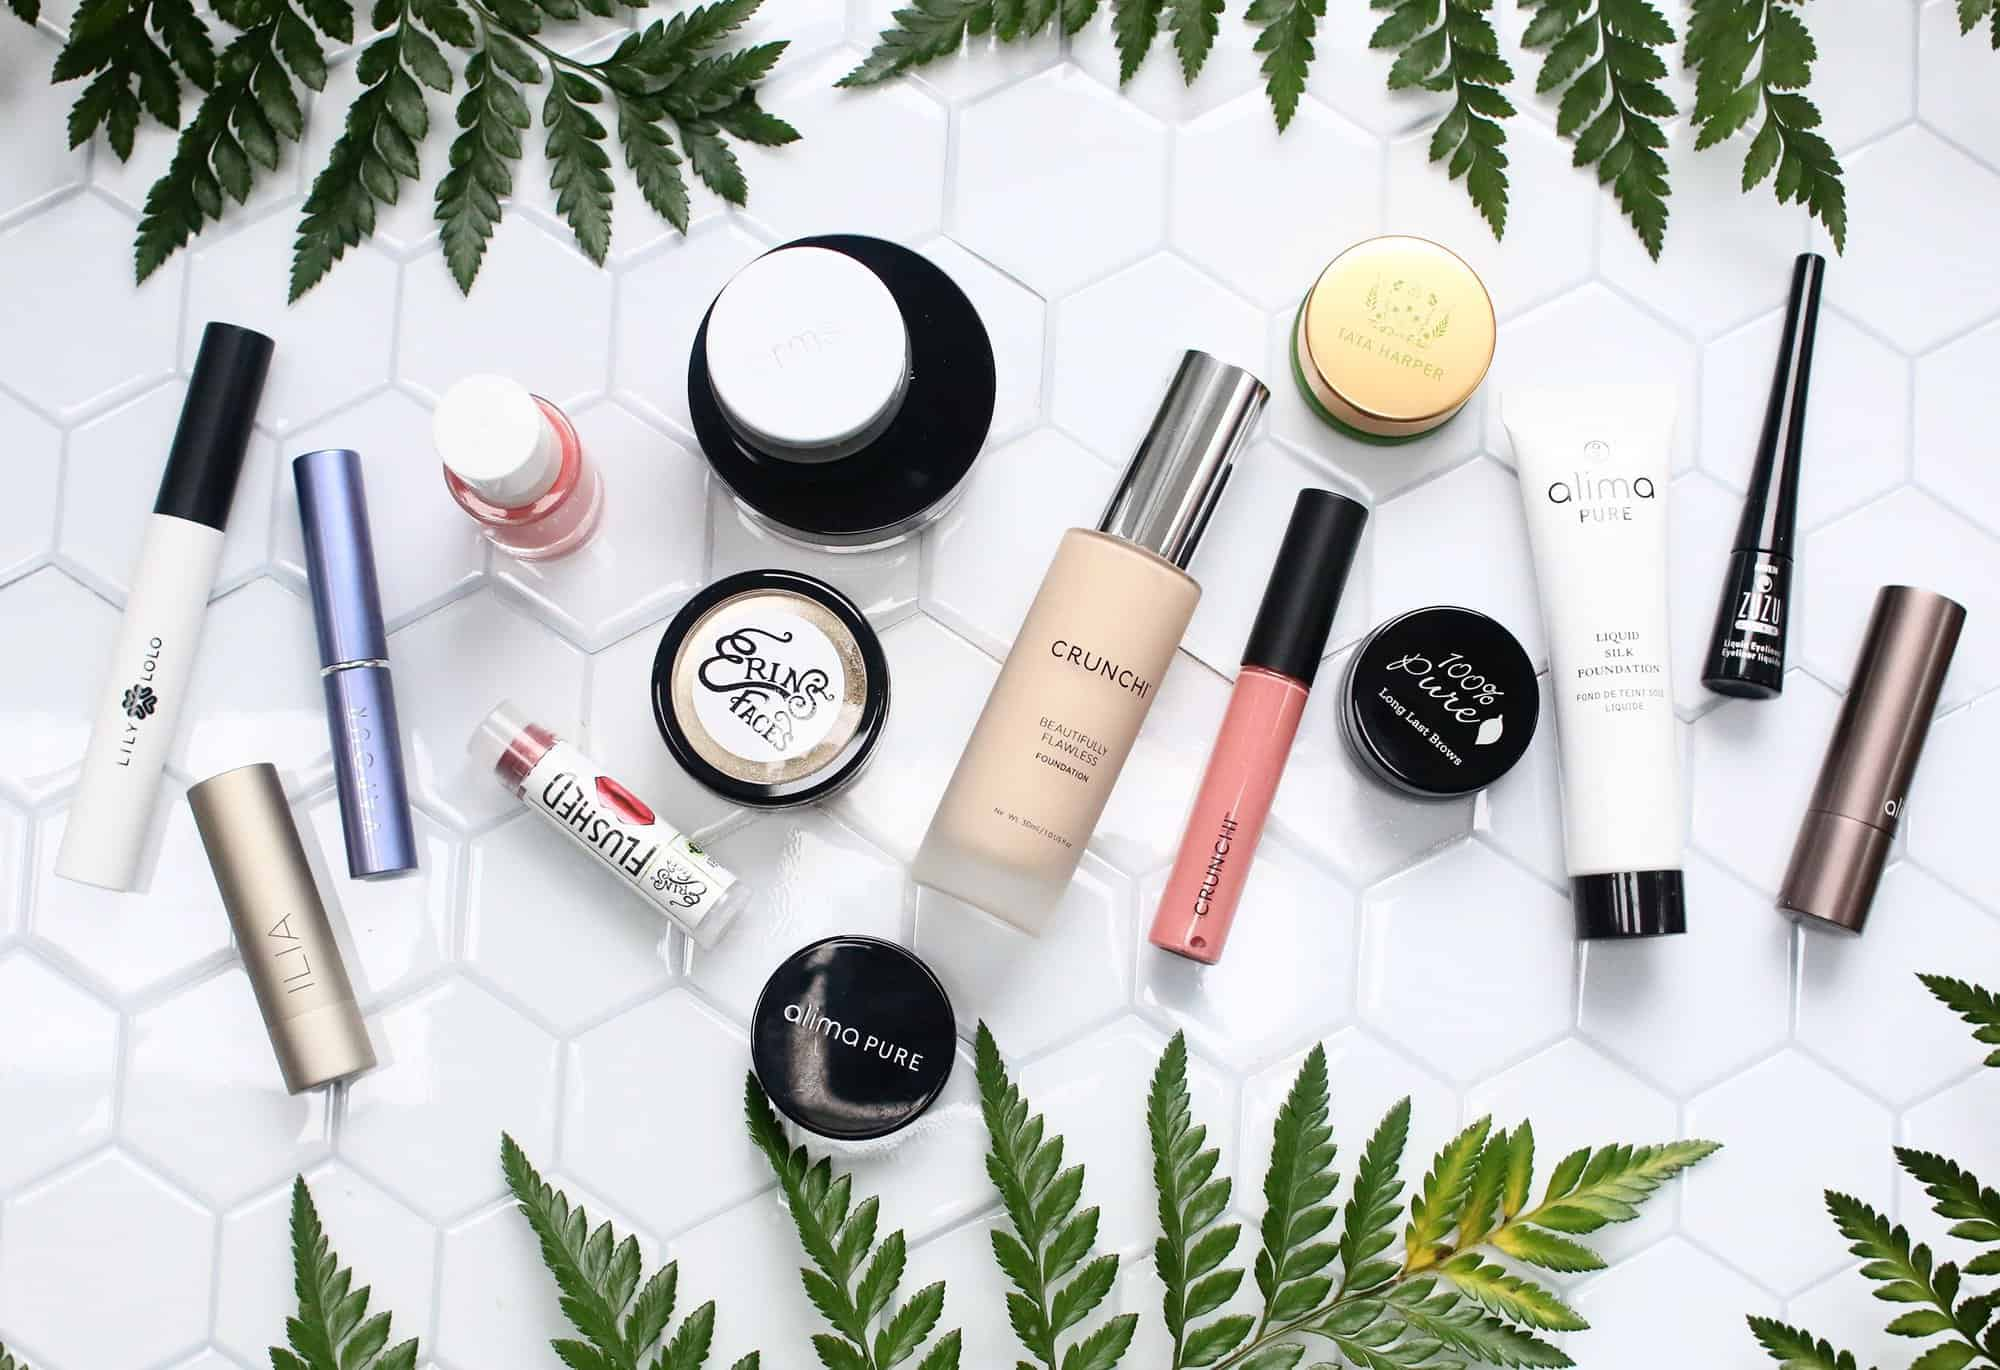 Today I'm sharing 10 of my favorite nontoxic beauty brands that are worth trying!